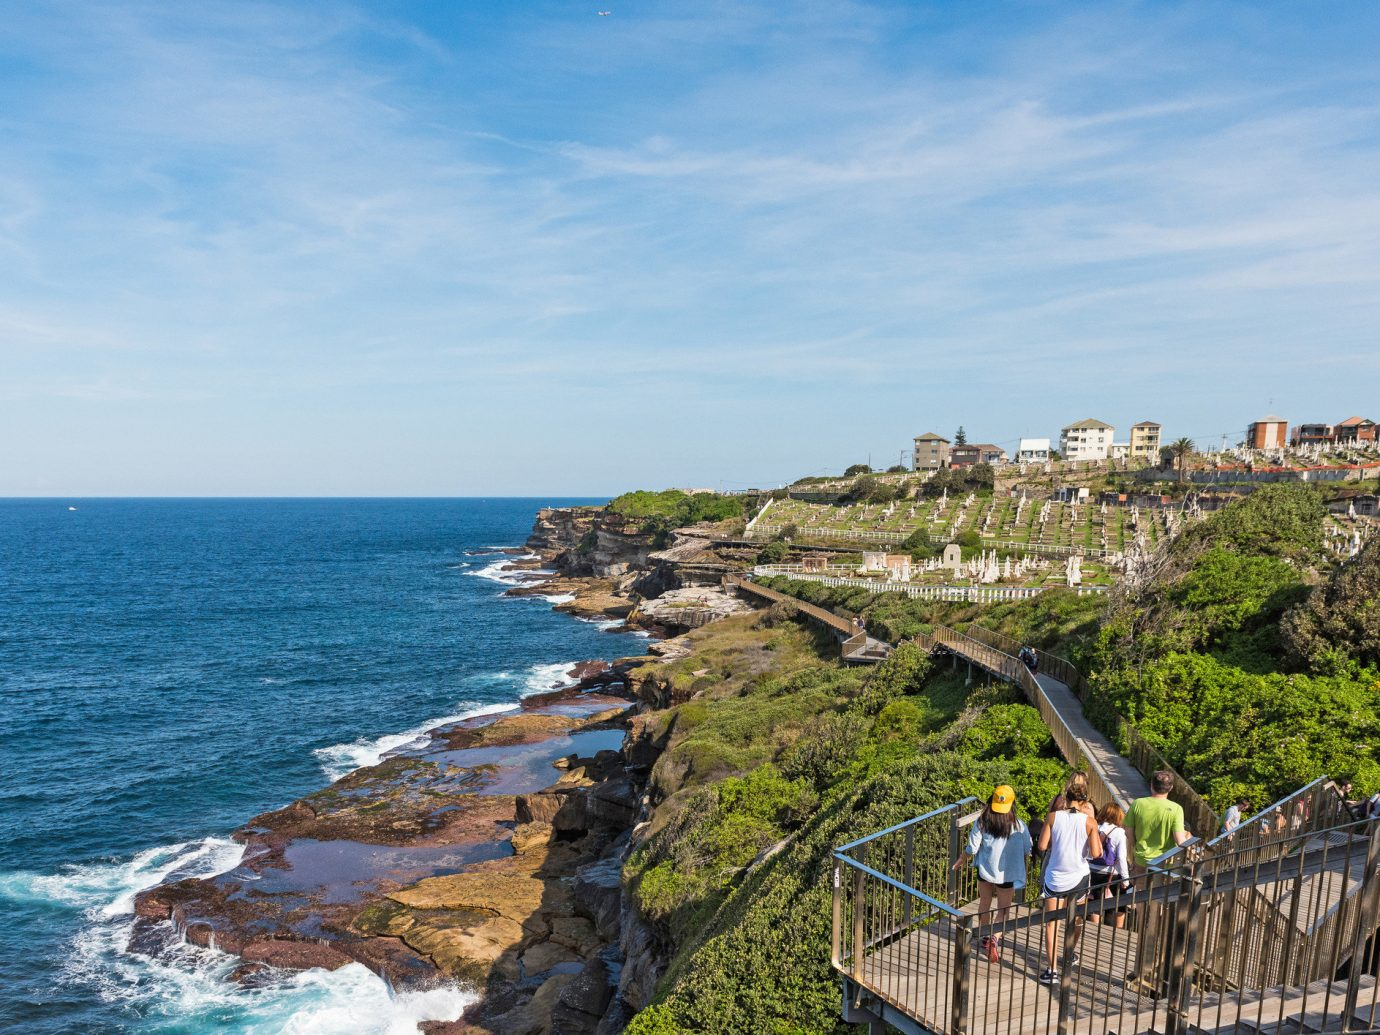 Outdoors + Adventure Sydney sky outdoor water Coast Sea promontory headland coastal and oceanic landforms Nature cape shore Ocean terrain bay tourism tree cliff City horizon cove traveling